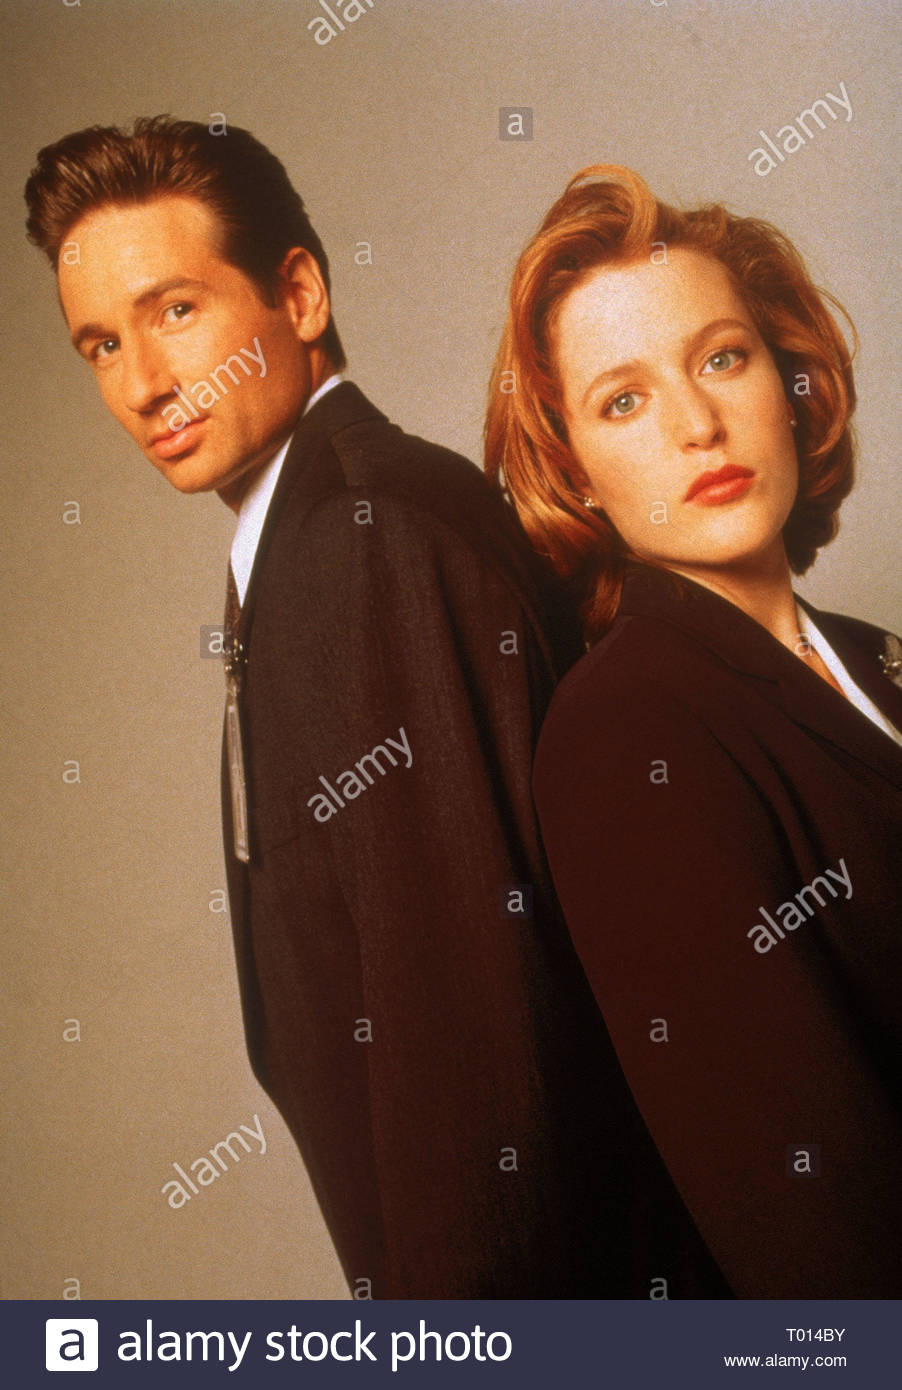 DAVID DUCHOVNY, GILLIAN ANDERSON, THE X FILES, 1993 - Stock Image